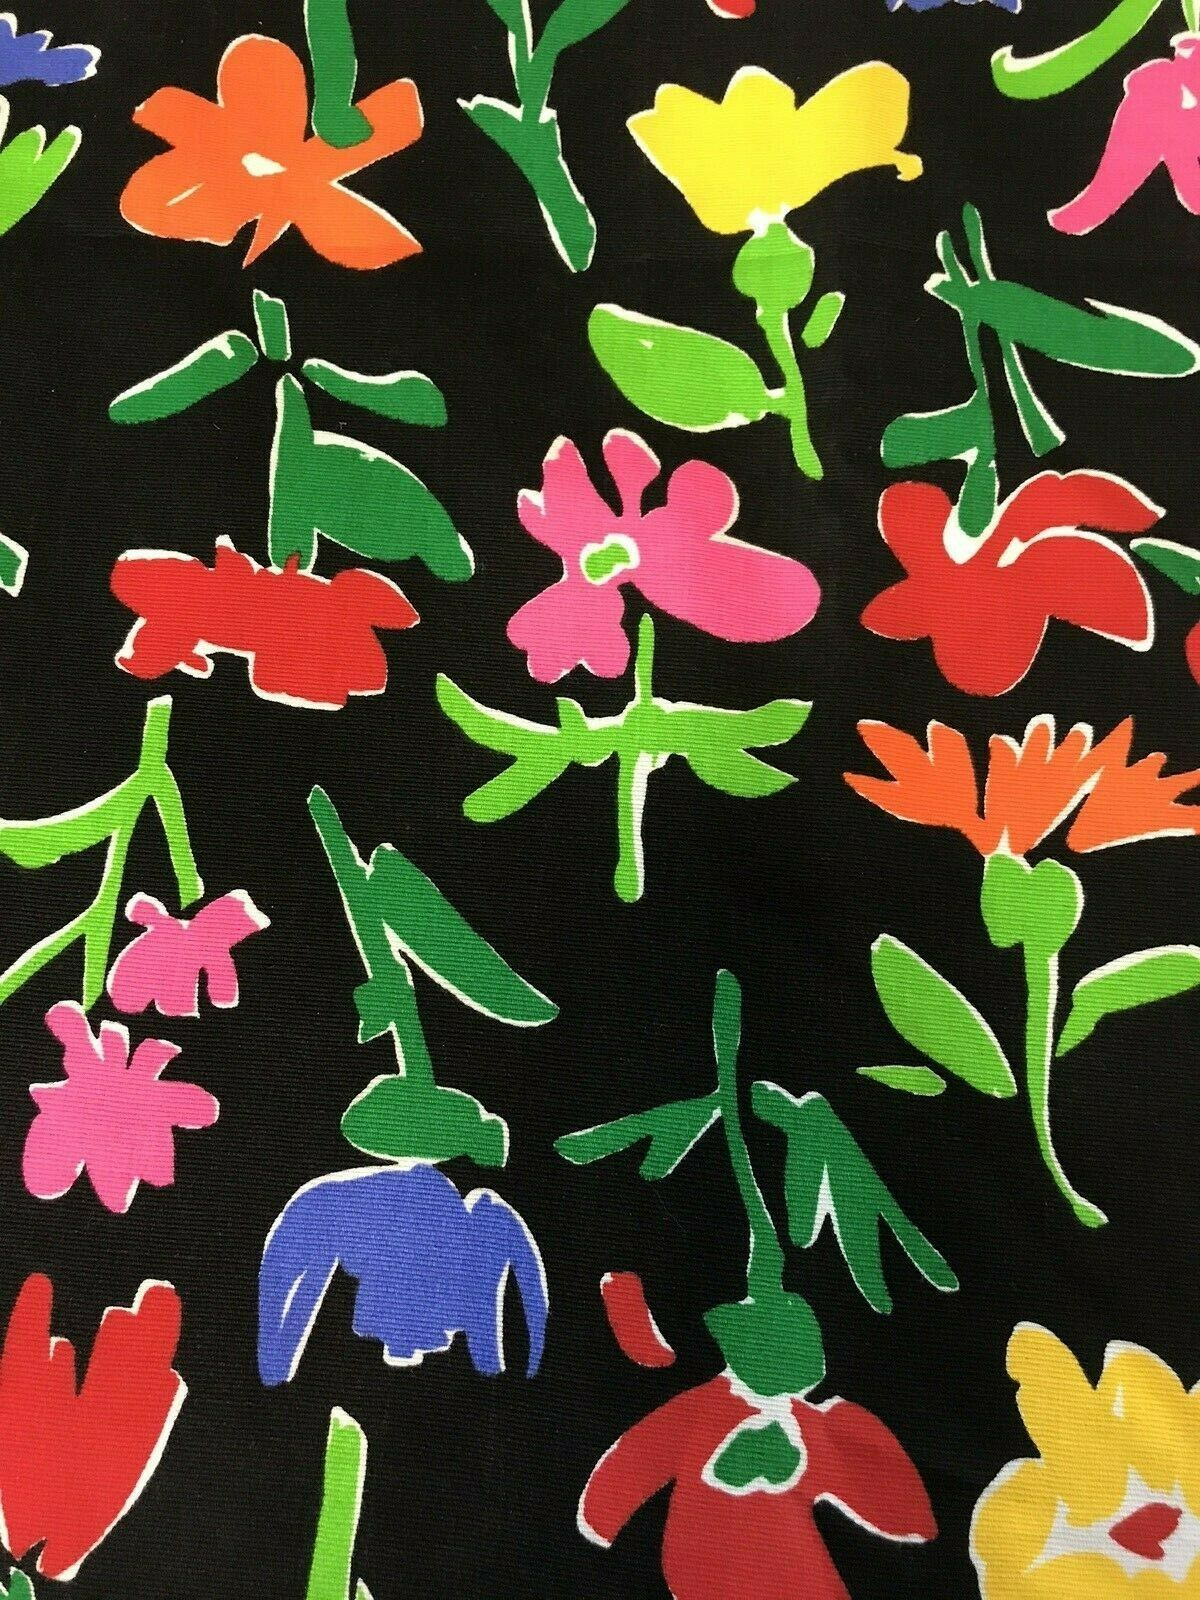 Fabric Vintage 90's Floral Bright Canvas Upholstery Flowers Black Pink Green